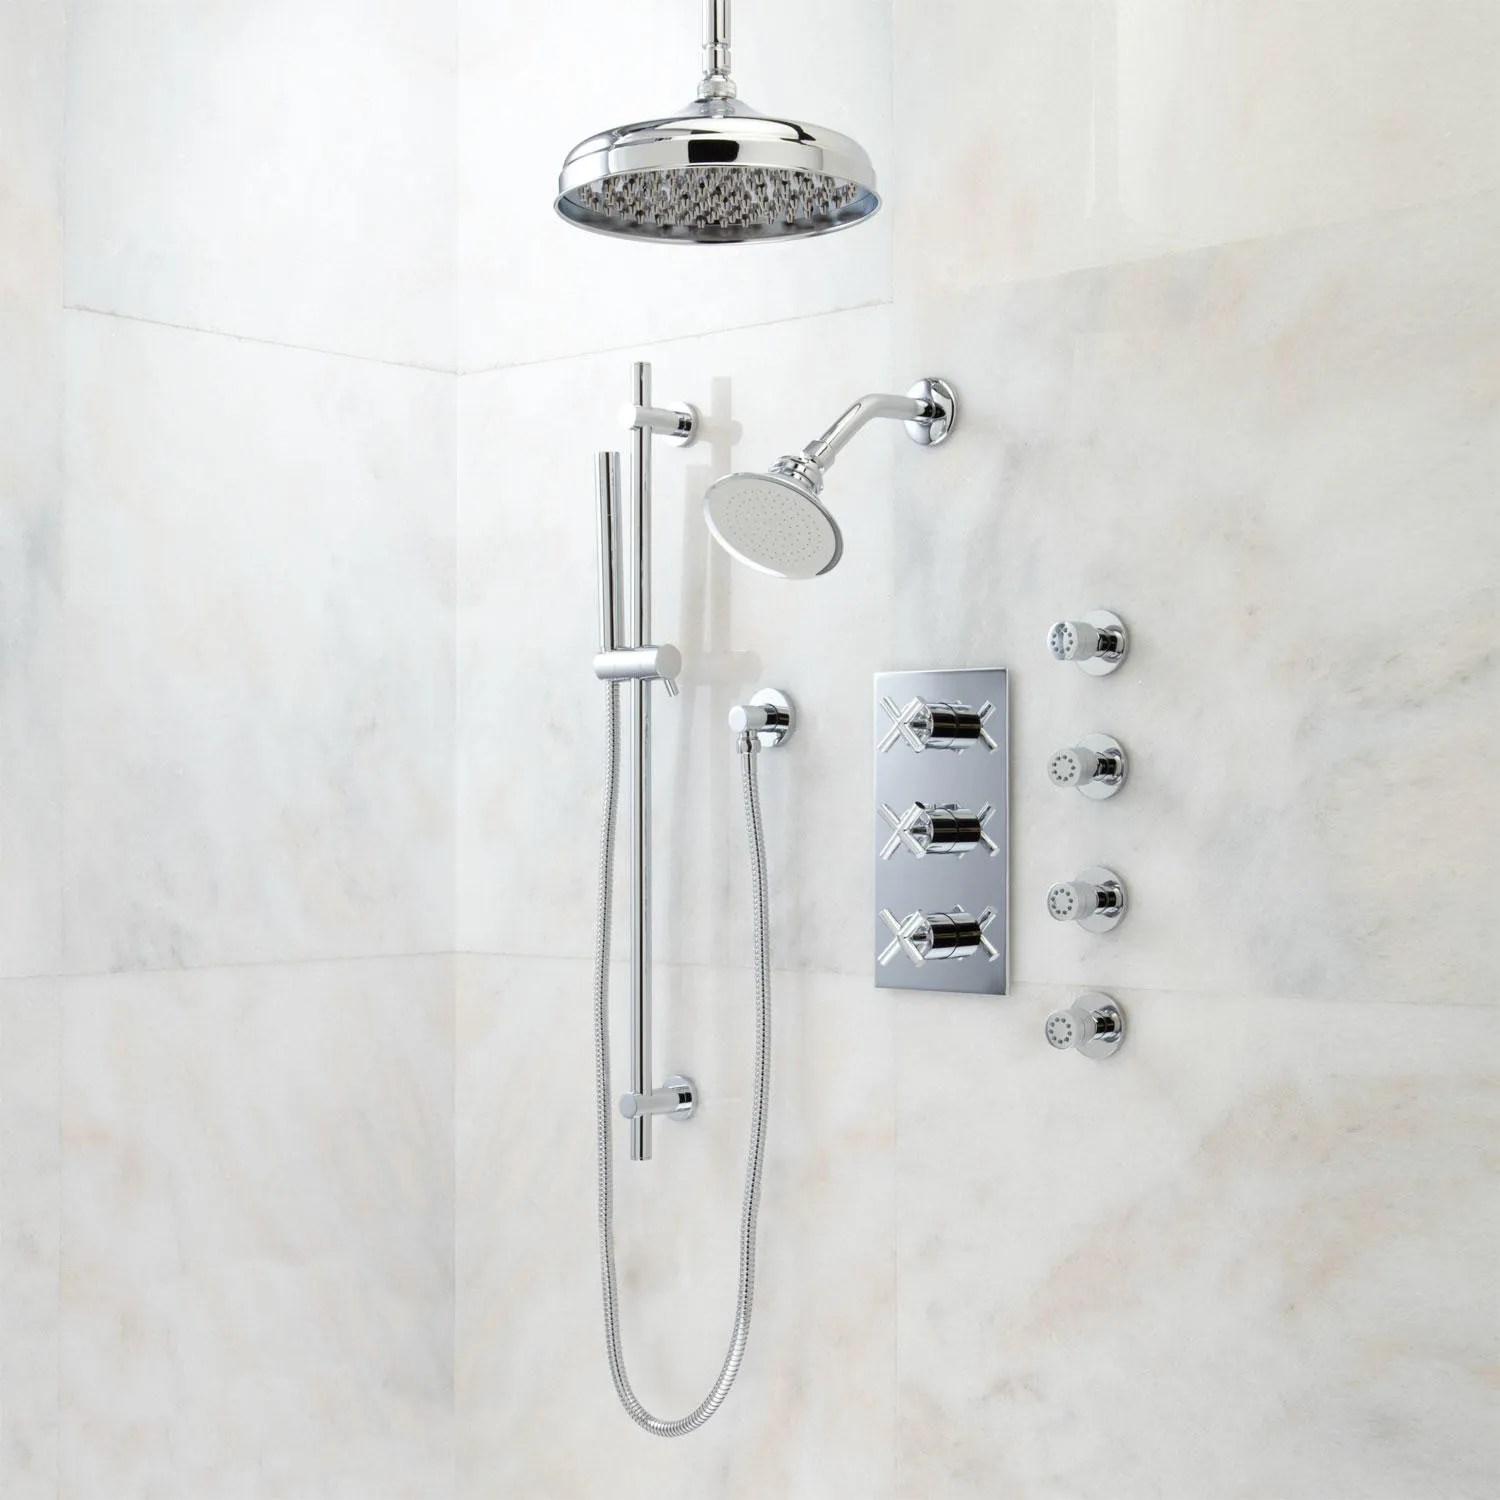 Exira Thermostatic Shower System  Dual Shower Heads Hand